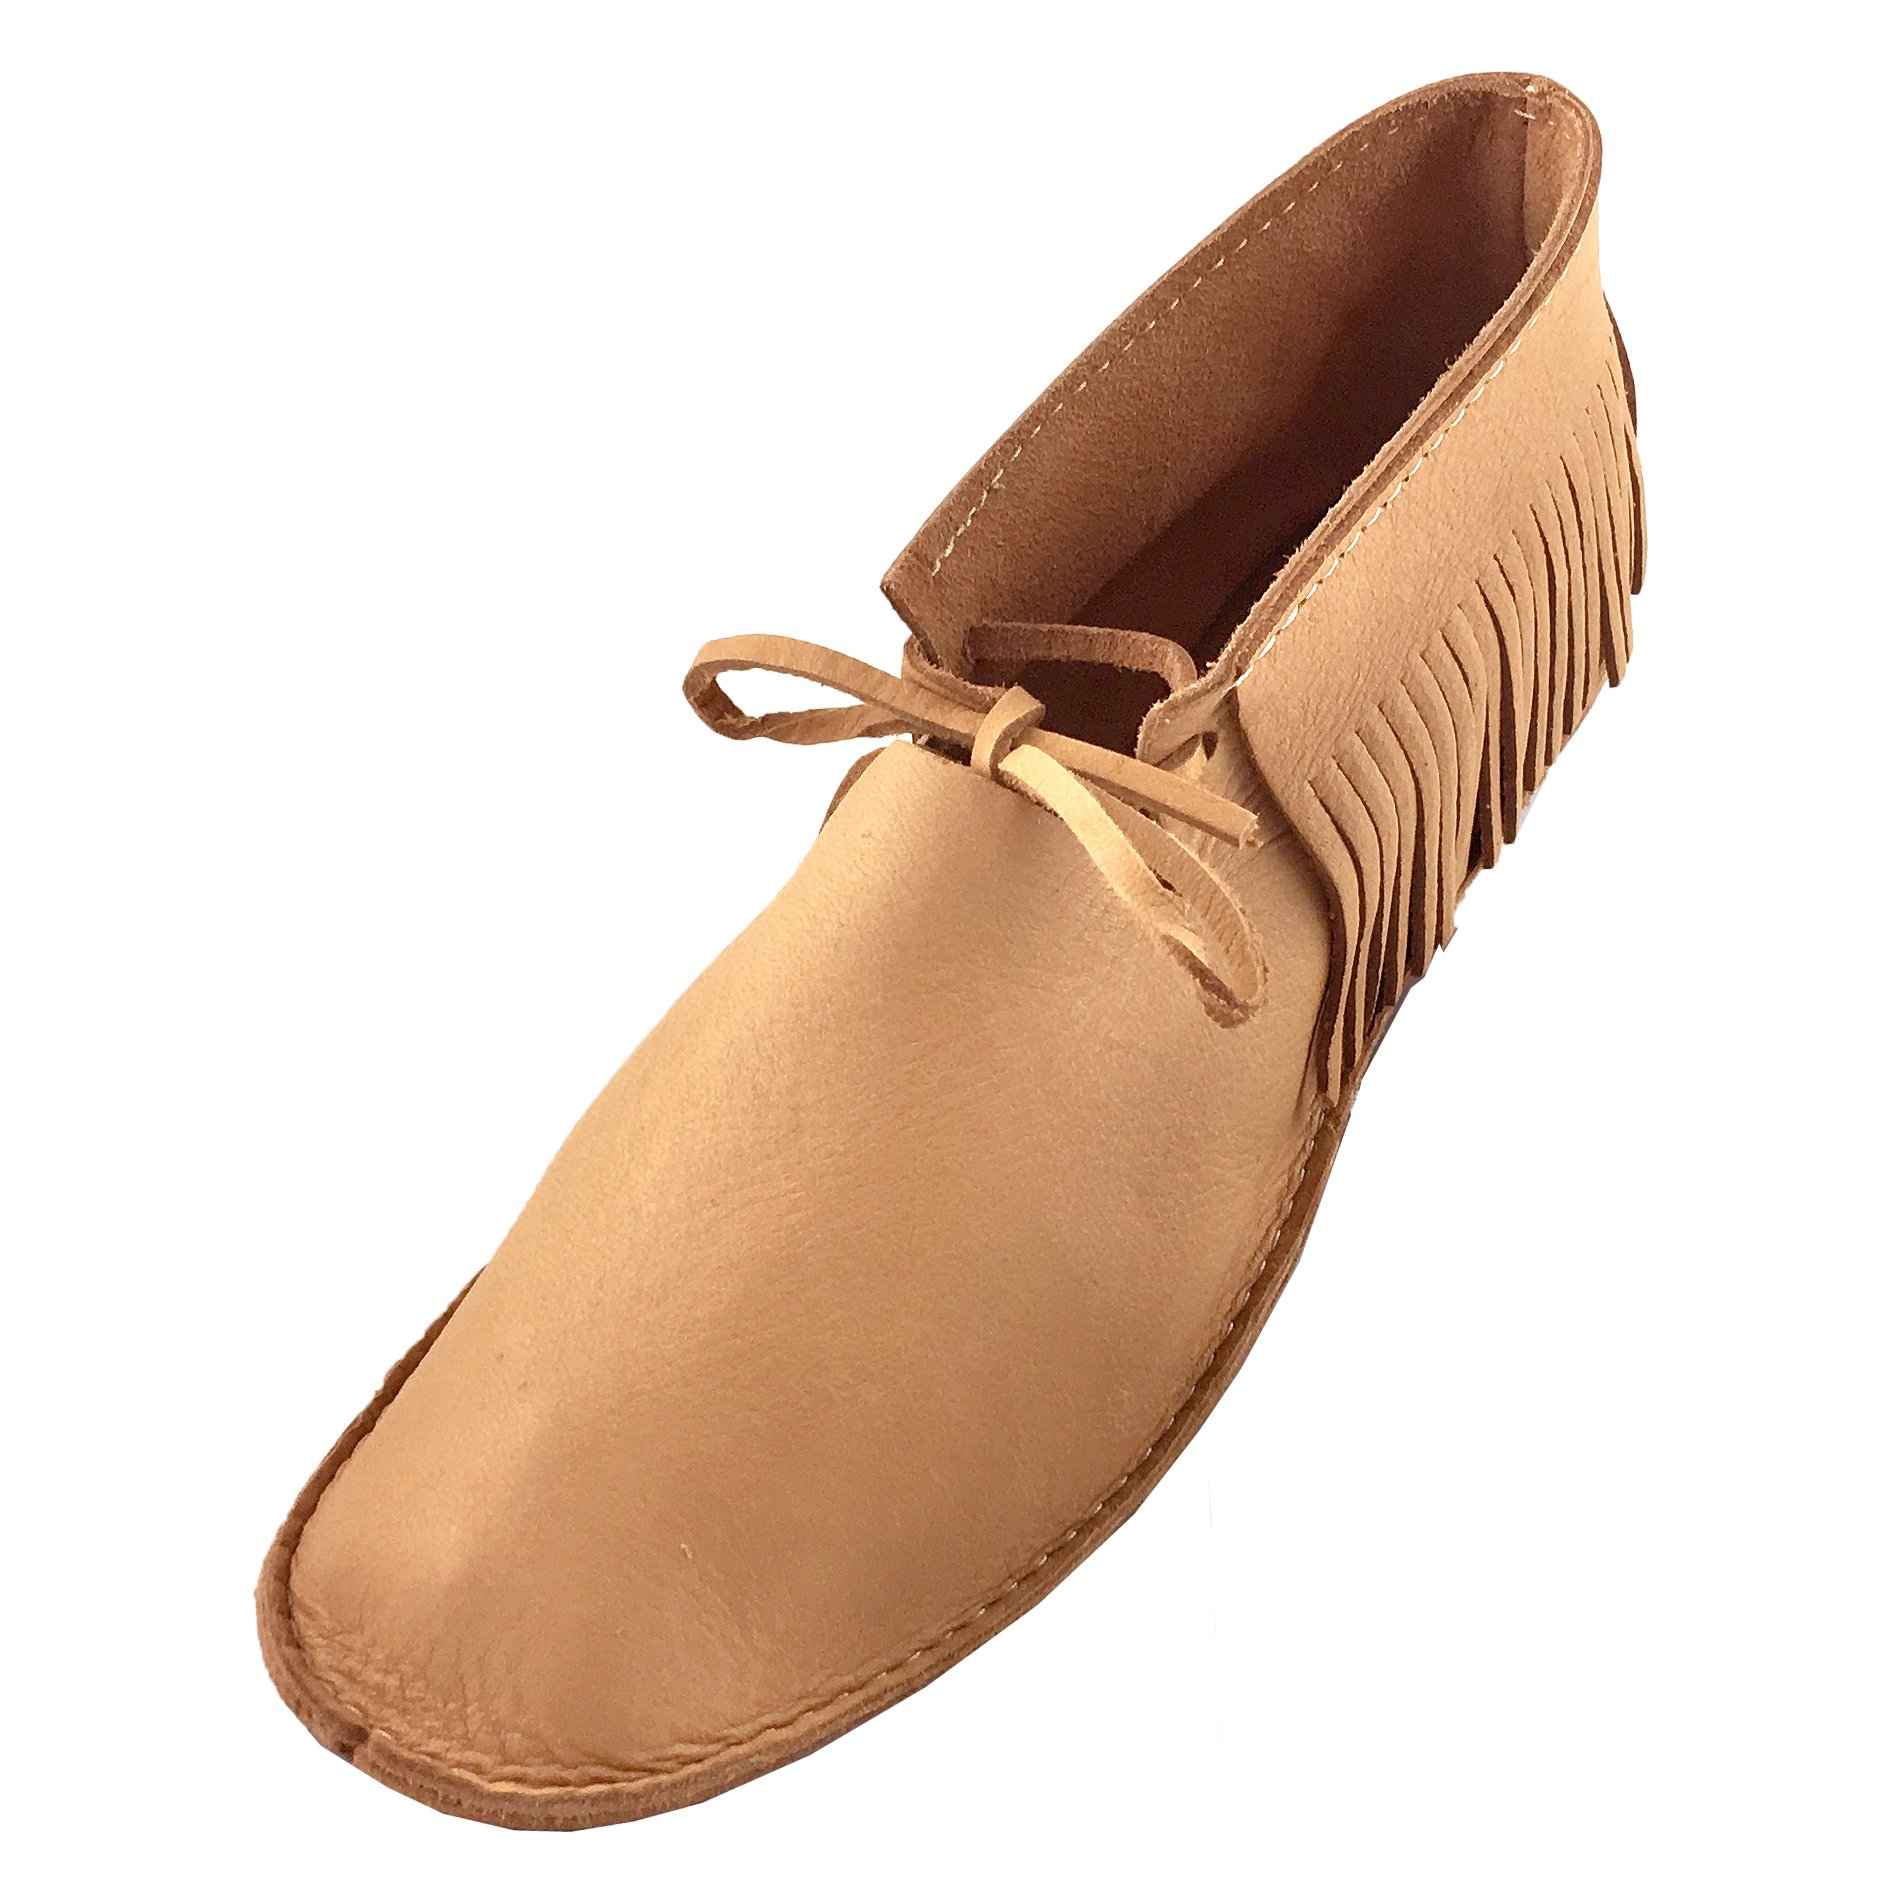 Bastien Industries Women's Moose Hide Leather with Heavy Oil Tan Sole Wedding Earthing Moccasins (9)